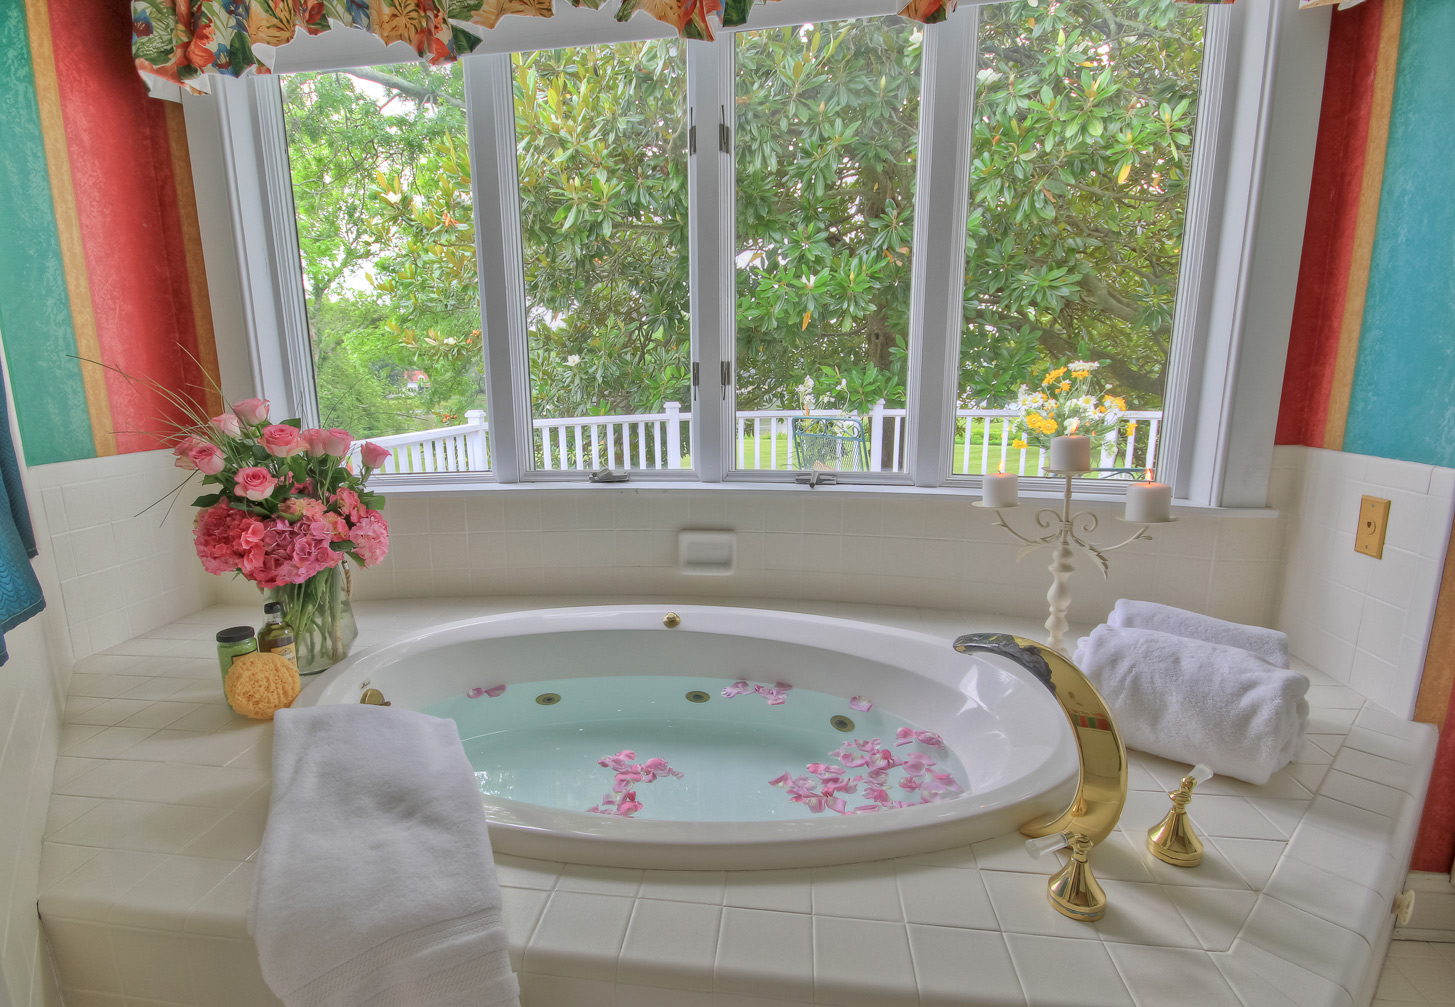 bathroom in suite of combsberry inn room with jacuzzi bath with rose petals